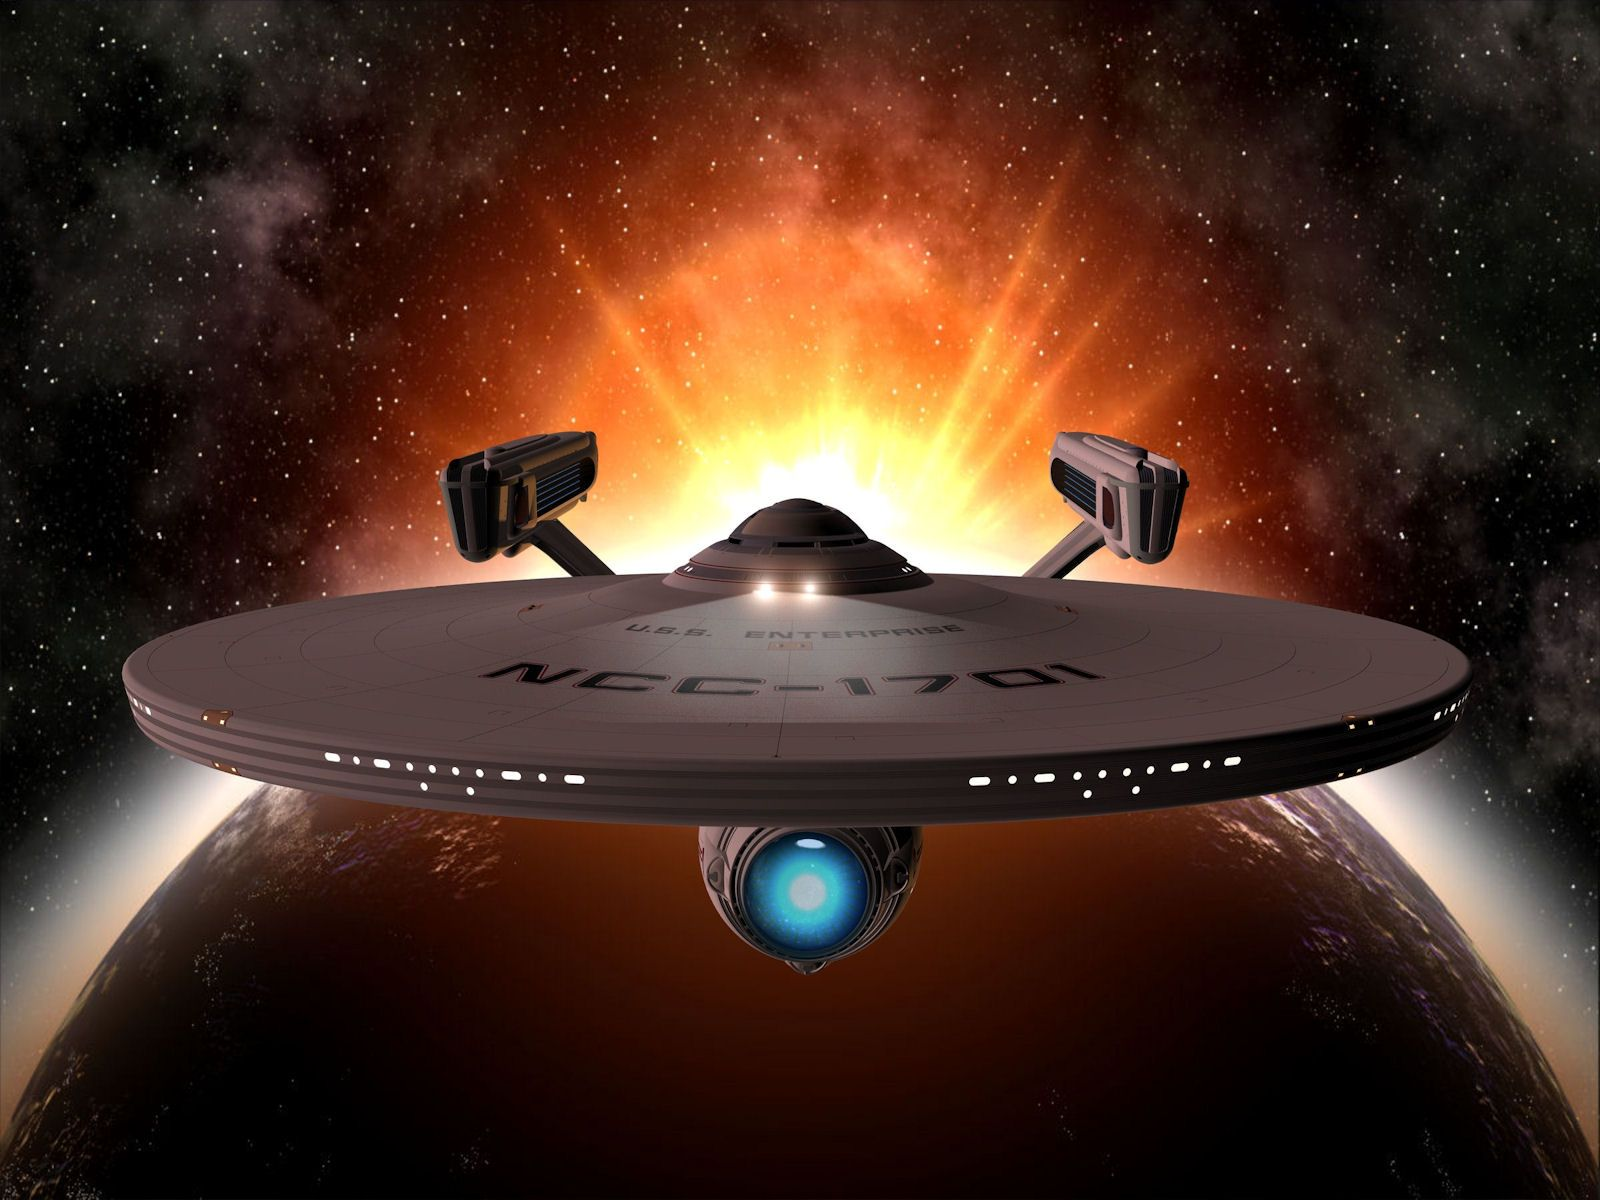 star trek enterprise ship wallpaper Google Search Star